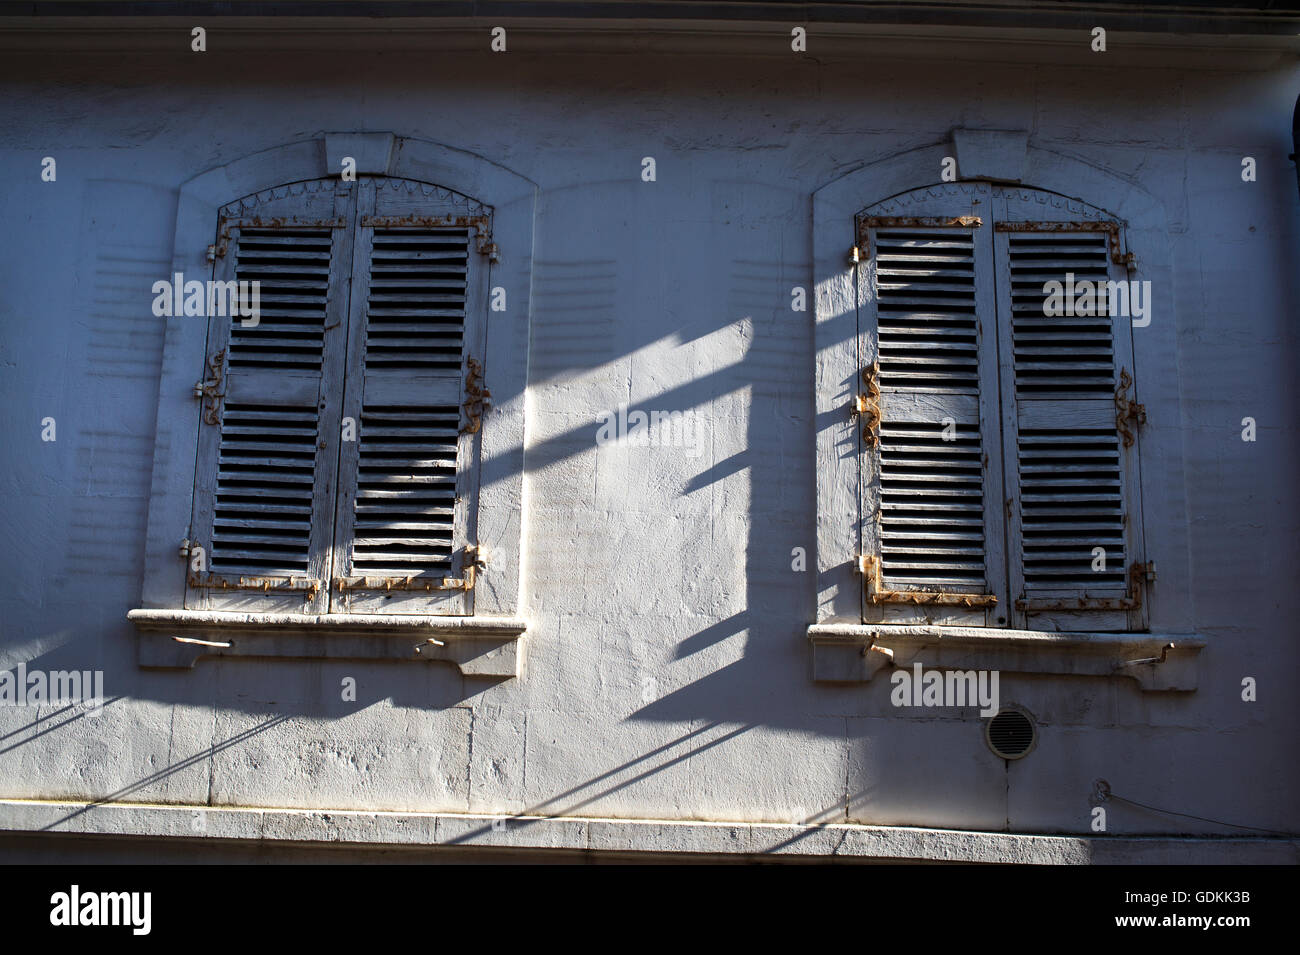 France. Arles. Closed shutters on an old house in disrepair. - Stock Image